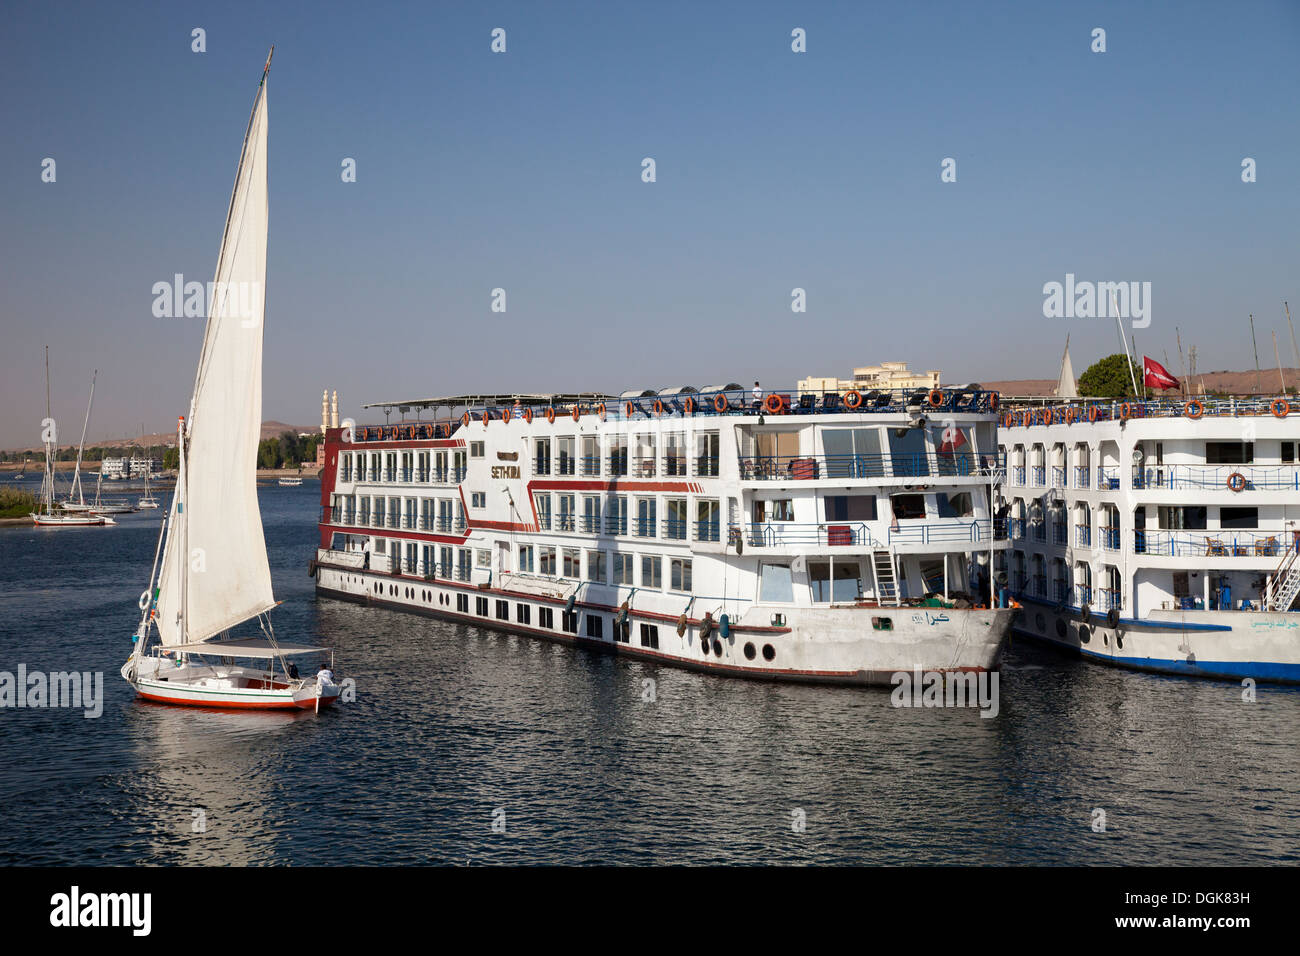 A Felucca and two Nile cruisers at Aswan. - Stock Image